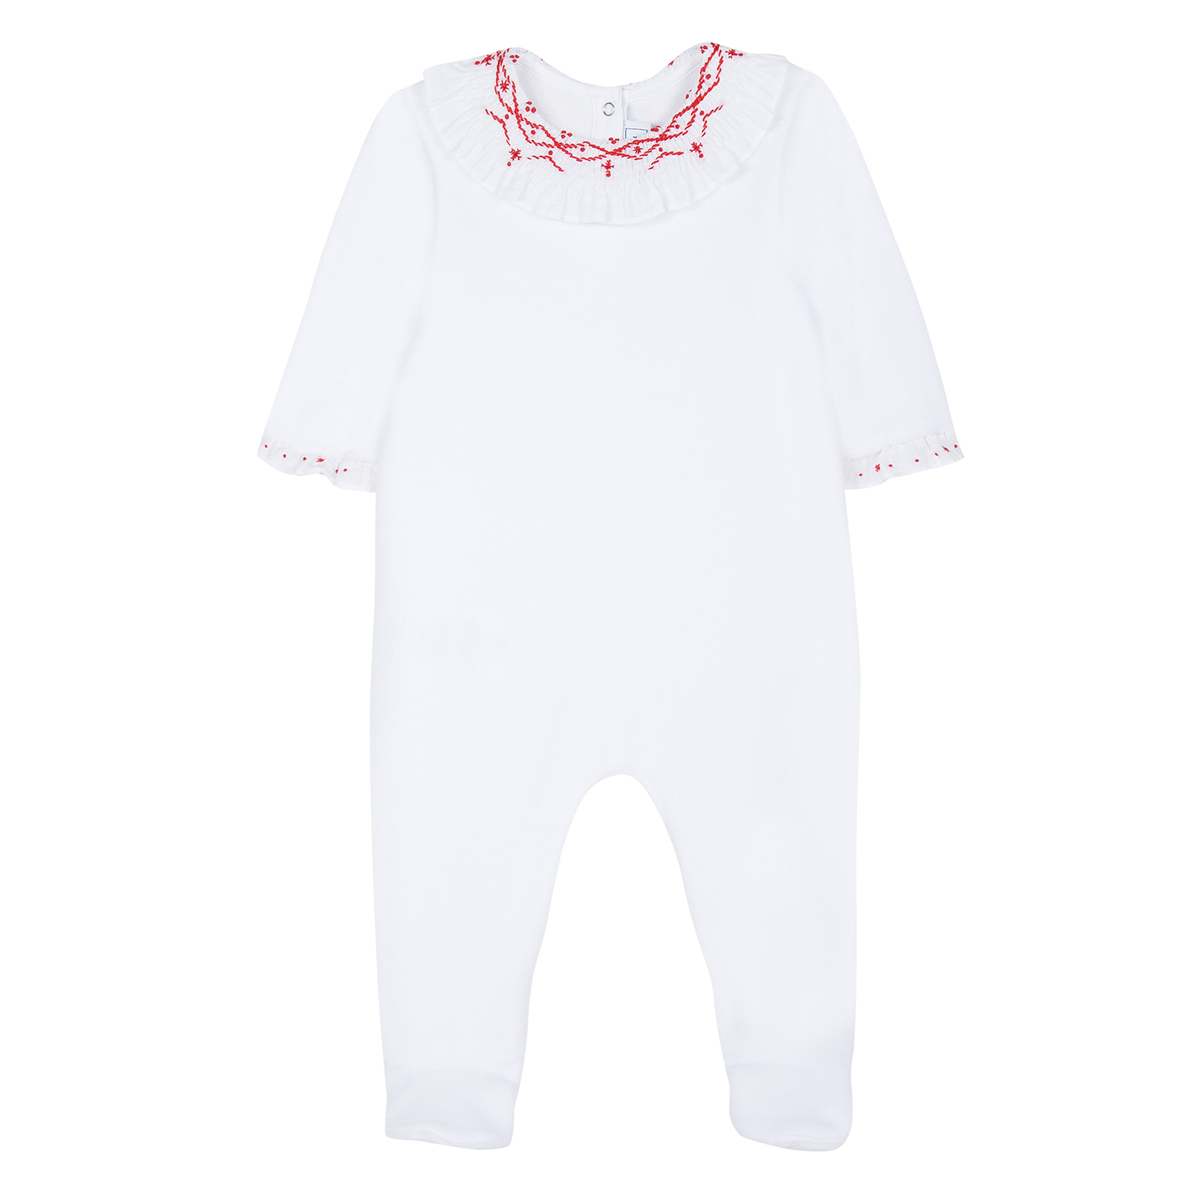 Tartine et Chocolate Footed Holiday Embroidered Collar Onesie